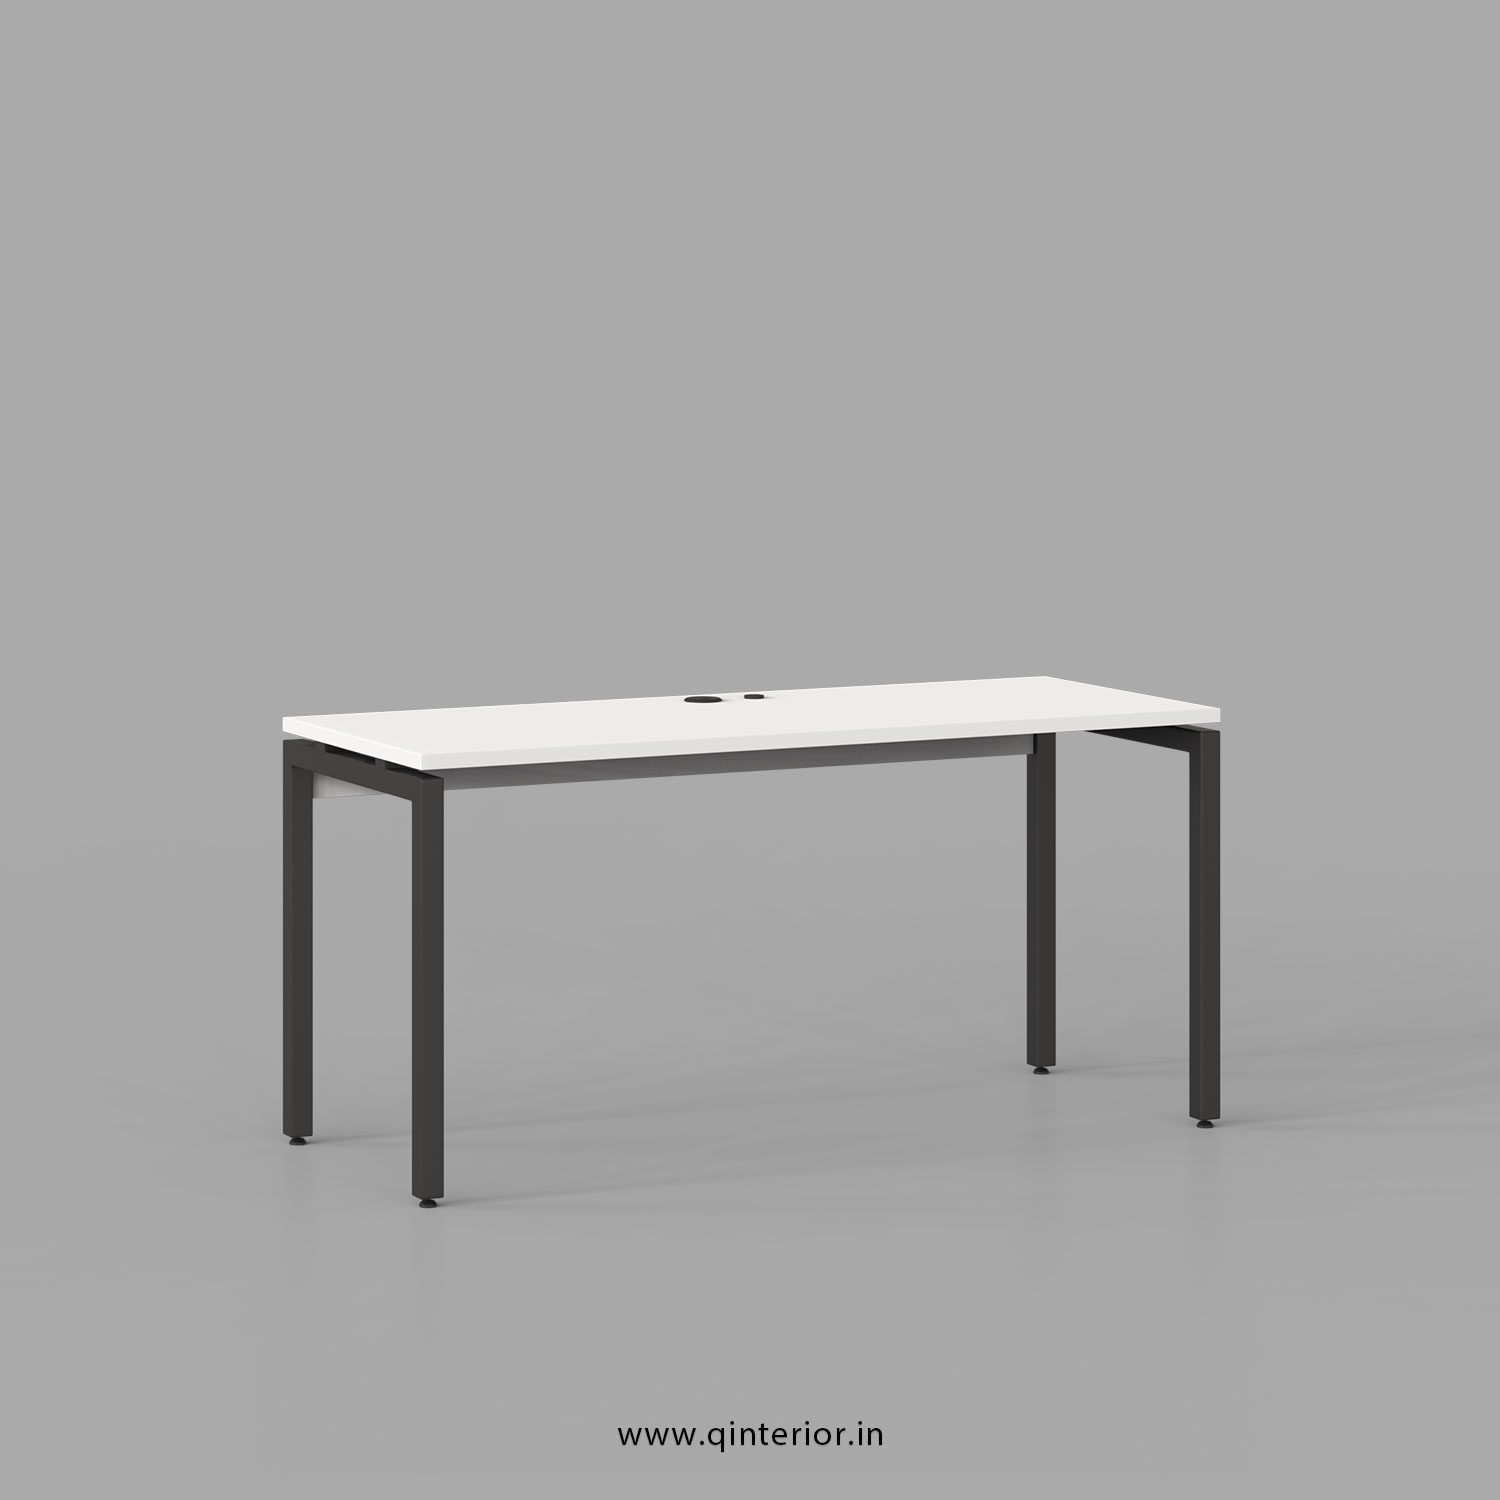 Montel Work Station in White Finish - OWS001 C4